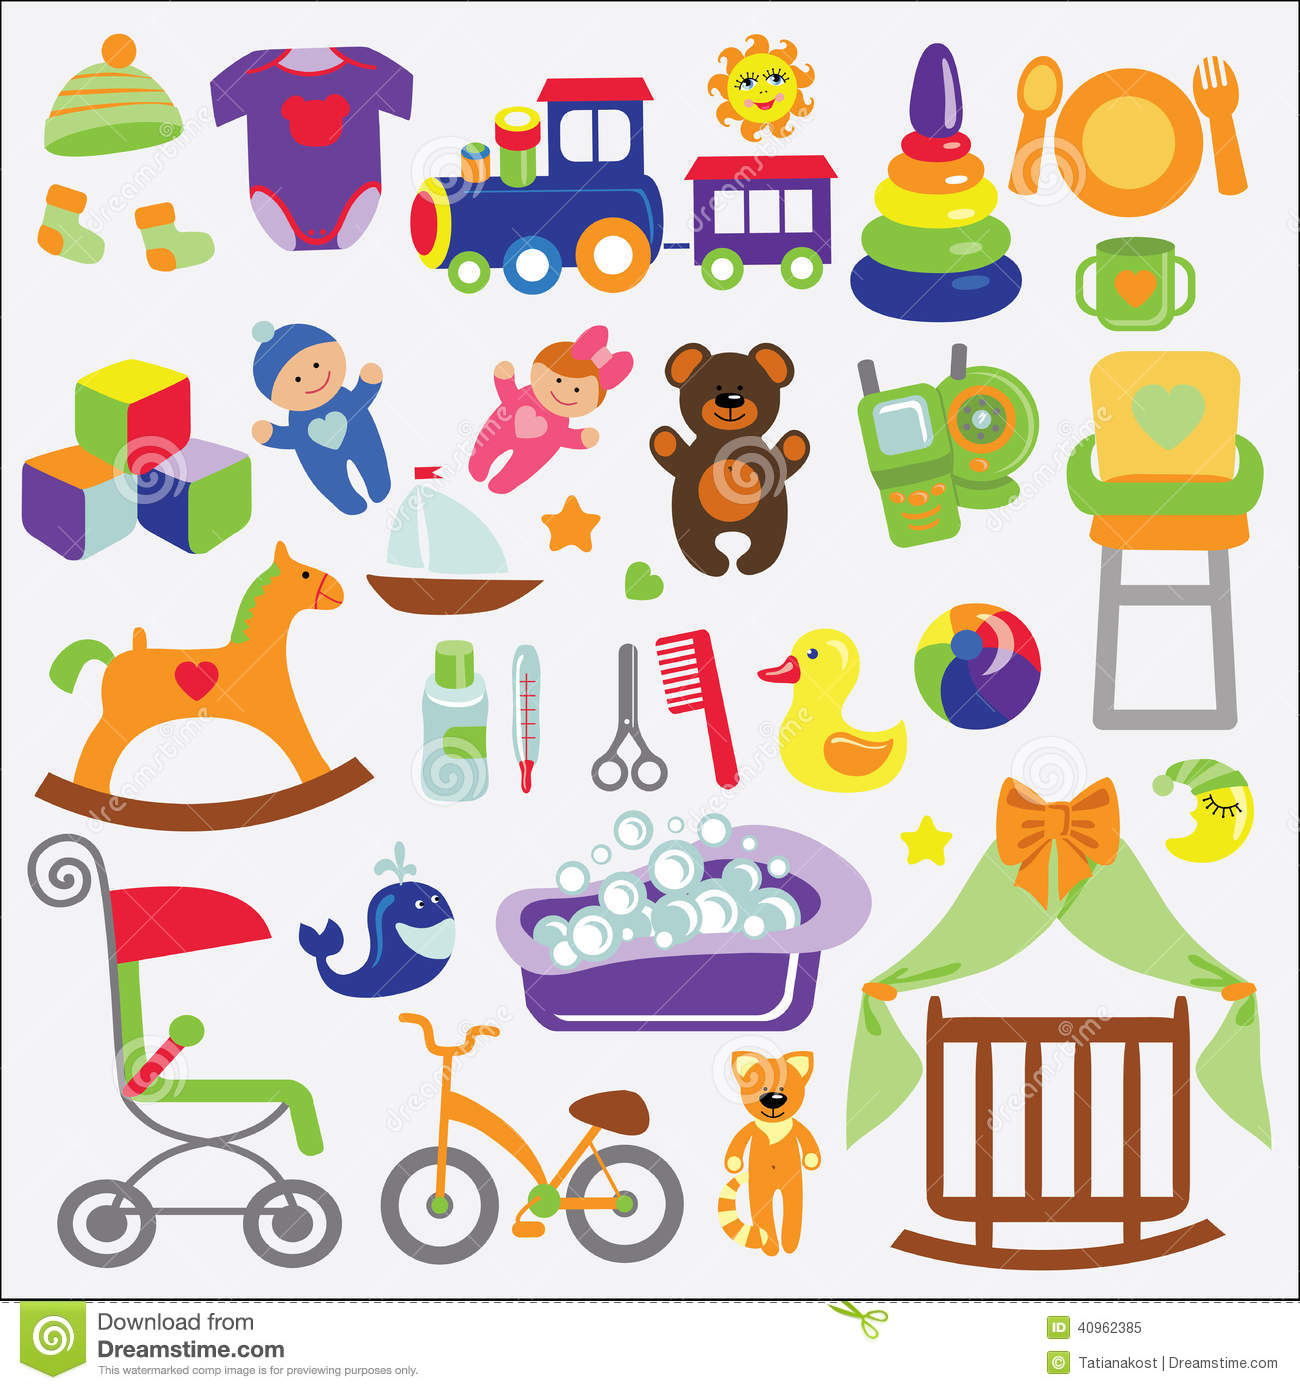 Baby Cartoon Vectores en stock y Arte vectorial Find this Pin and more on Рисунки by Неля. cute free clip art for babies nicu - Bing images See a rich collection of stock vectors & images for baby cartoon you can buy on Shutterstock.